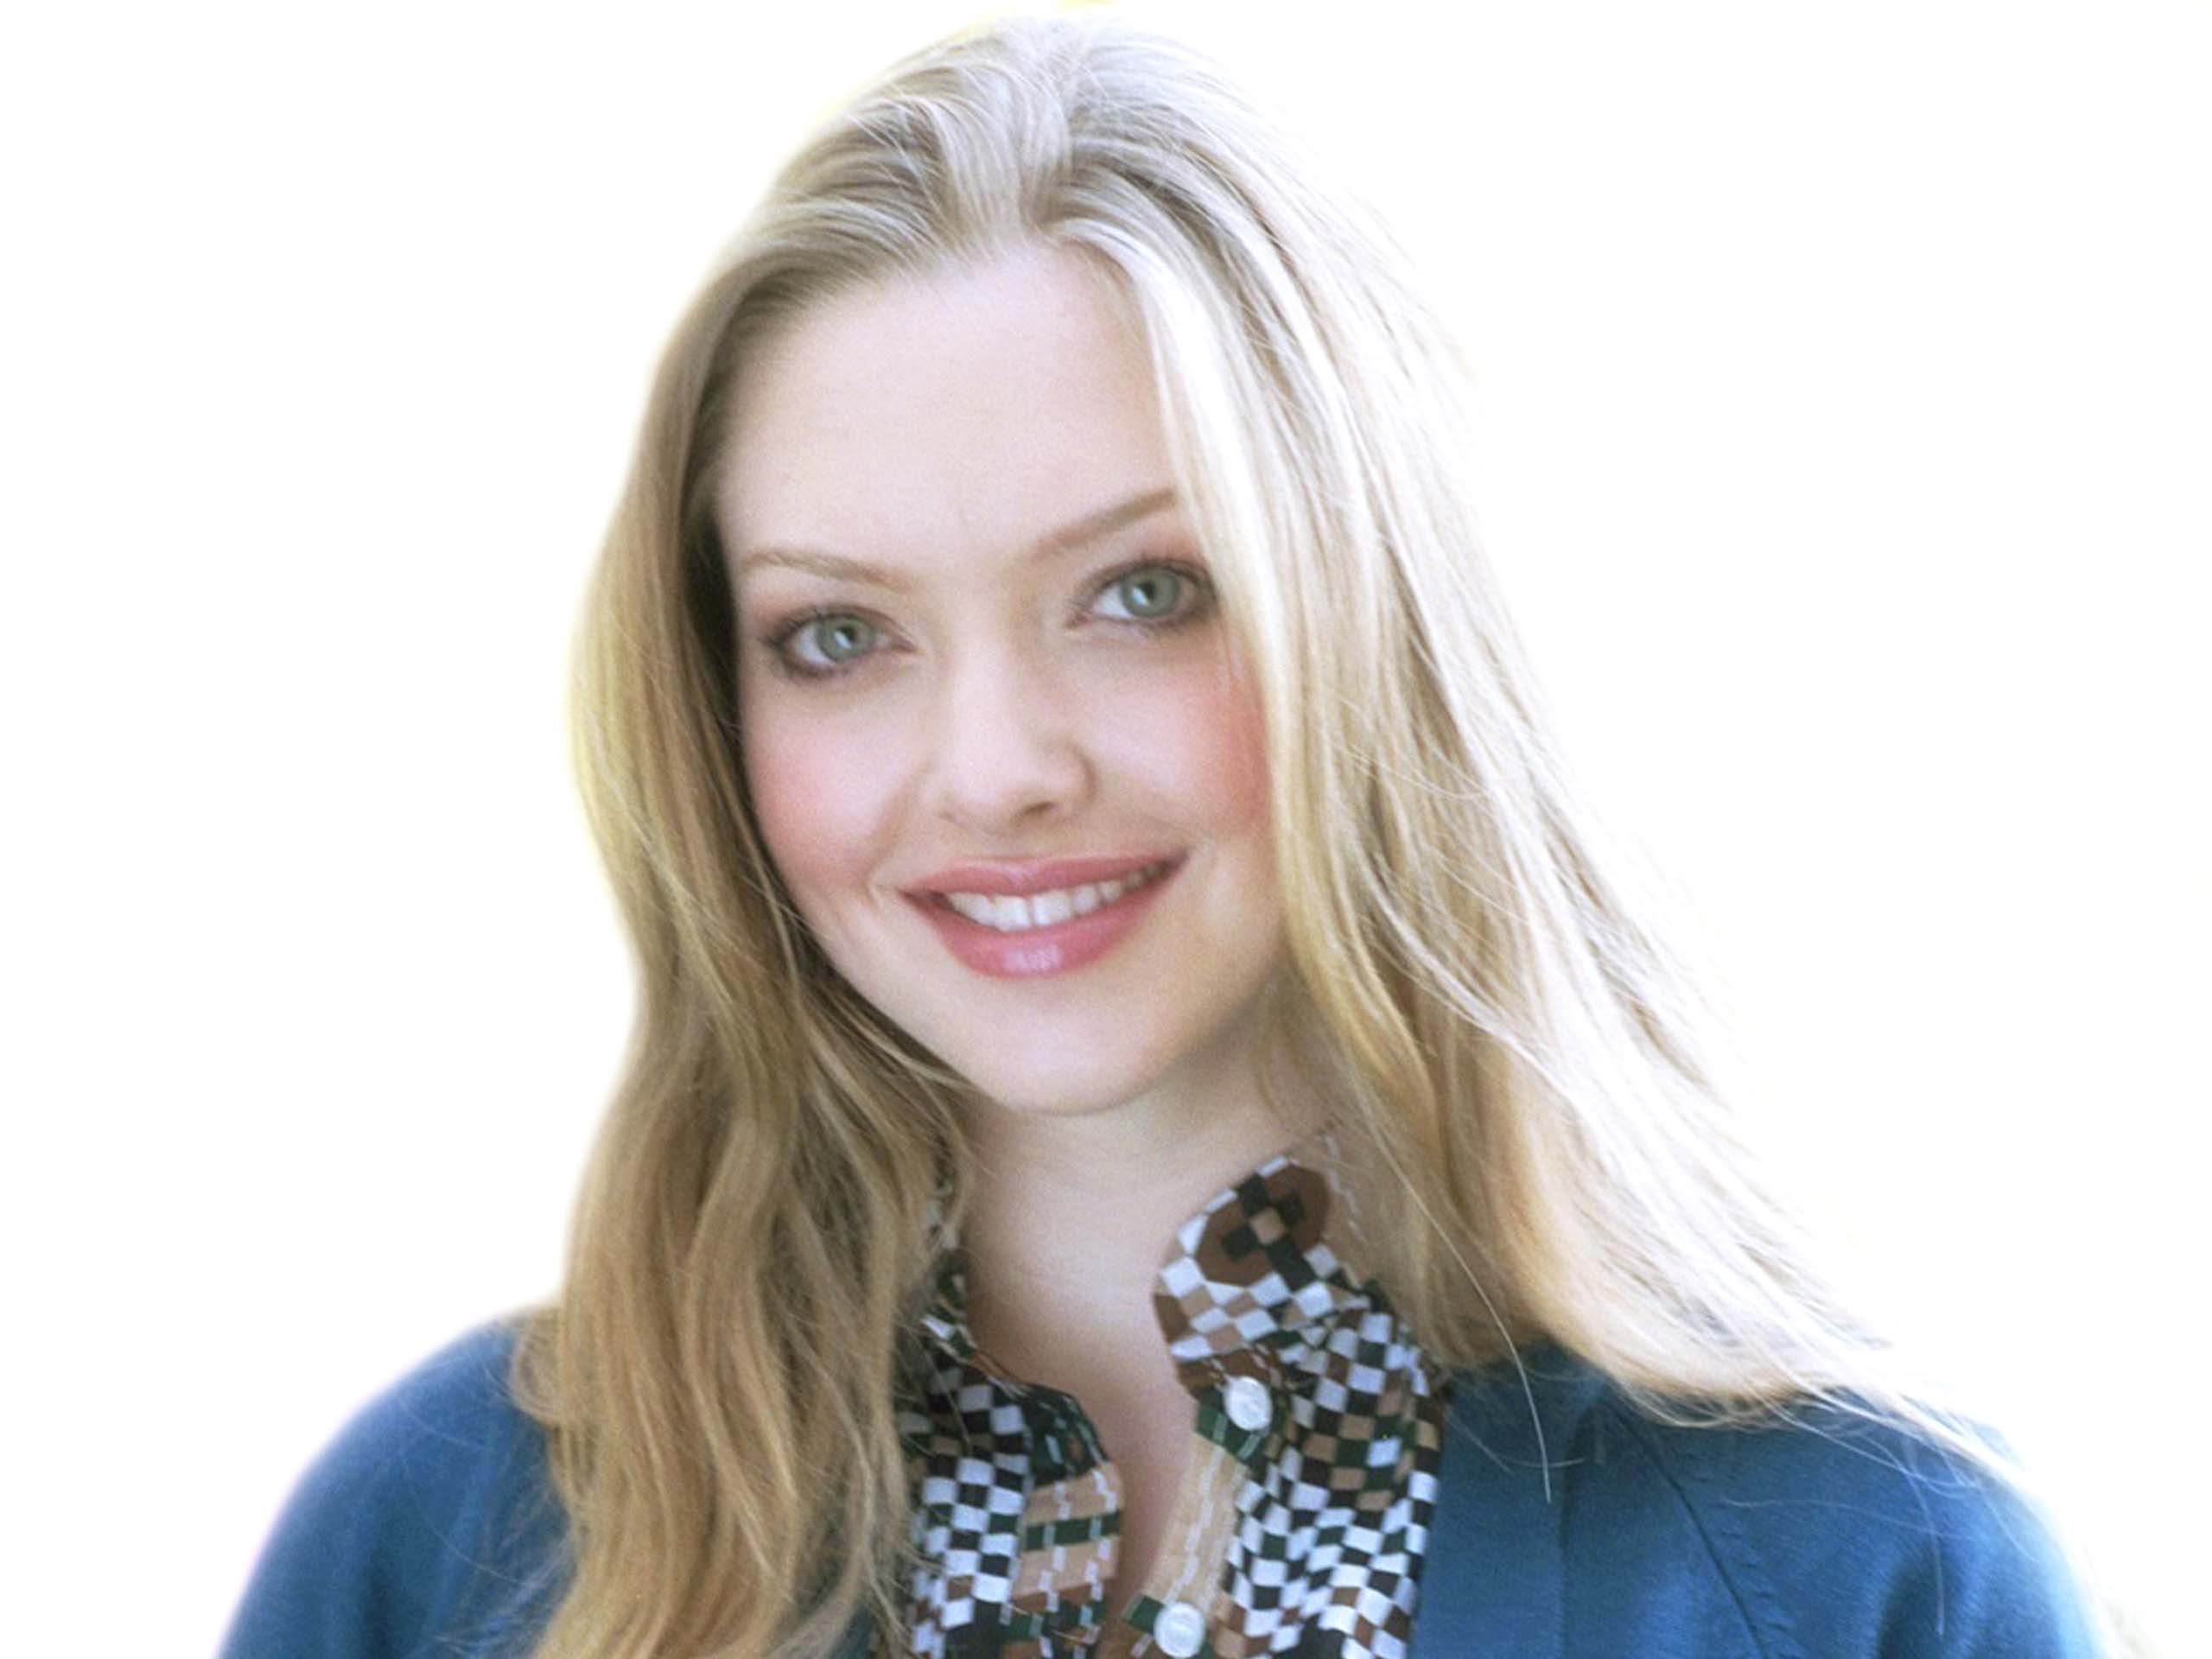 lovely amanda seyfried beauty images free hd background download